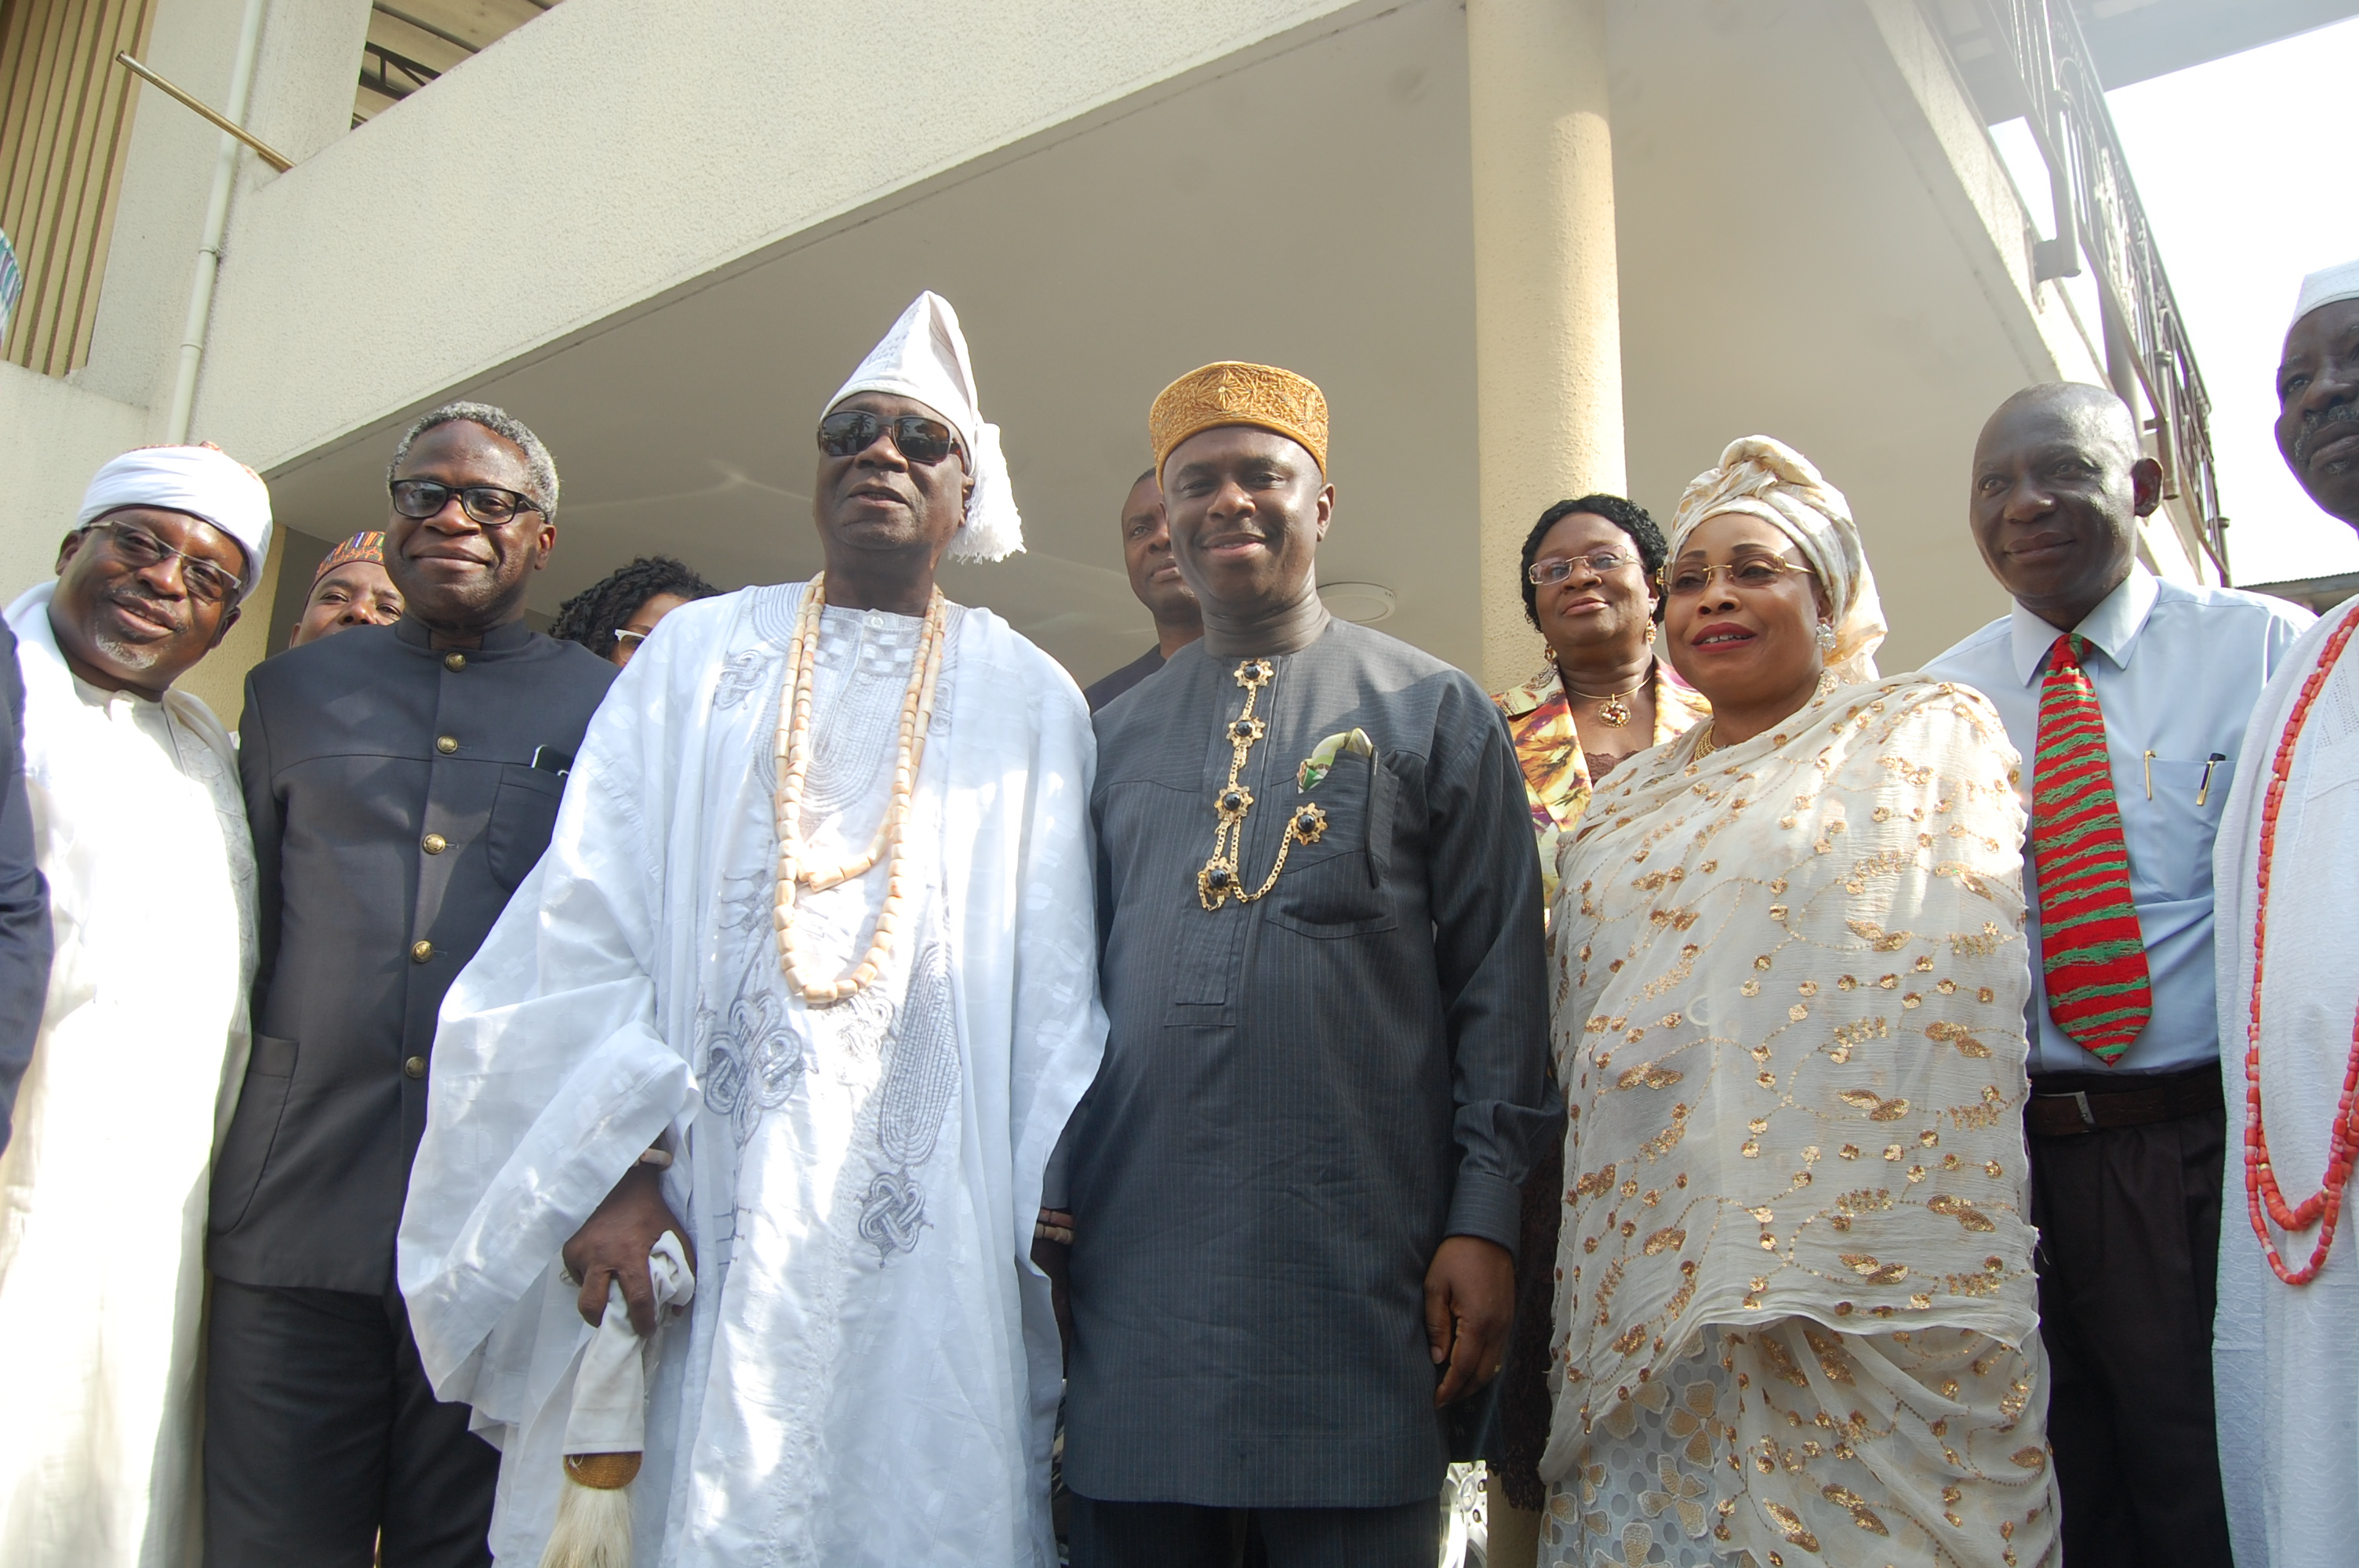 Oba of Lagos, Oba Rilwan Akiolu flanked by the Director General, Nigerian Maritime Administration and Safety Agency (NIMASA) Dr. Dakuku Peterside ( R) and the Executive Director, Operations, NIMASA, Engr. Rotimi Fashakin (L) during the visit of the NIMASA Management to the Oba's Palace in Lagos recently